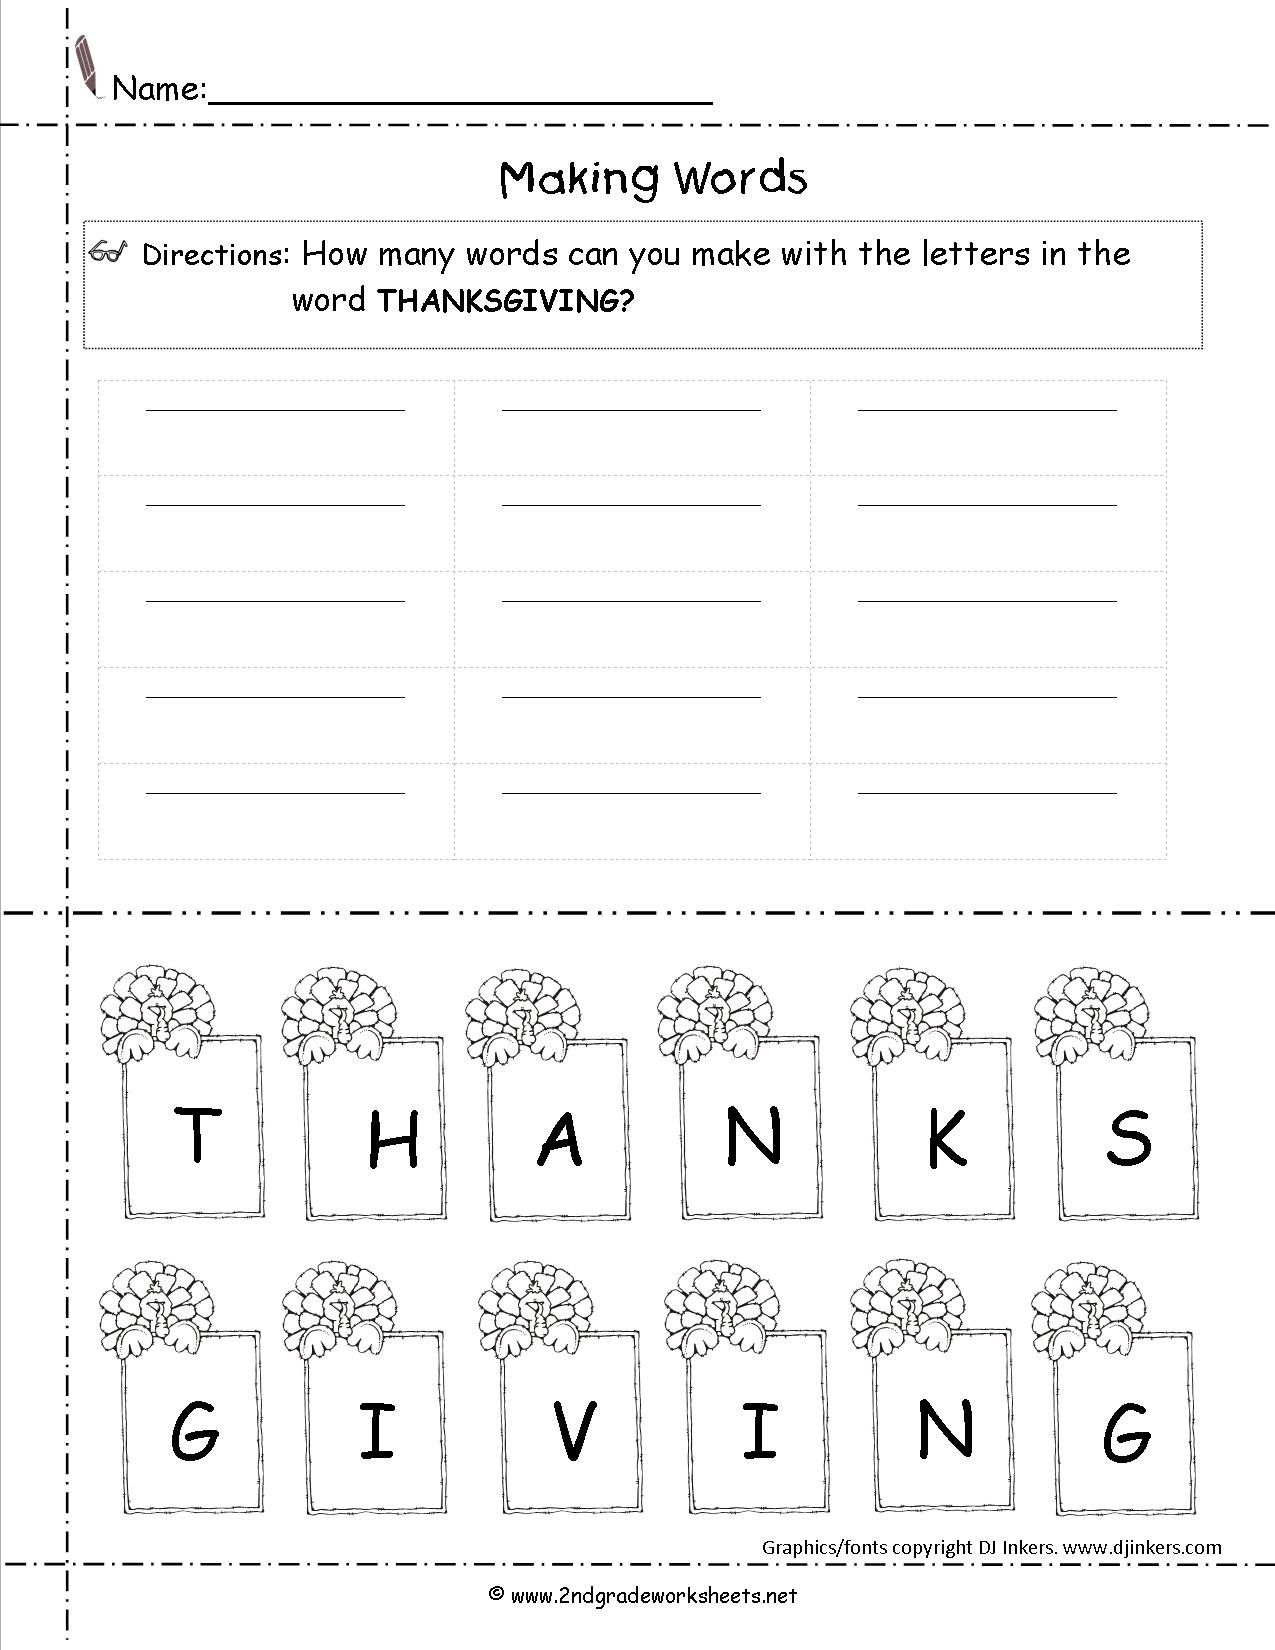 The Free Printable Thanksgiving Math Worksheets For 3Rd